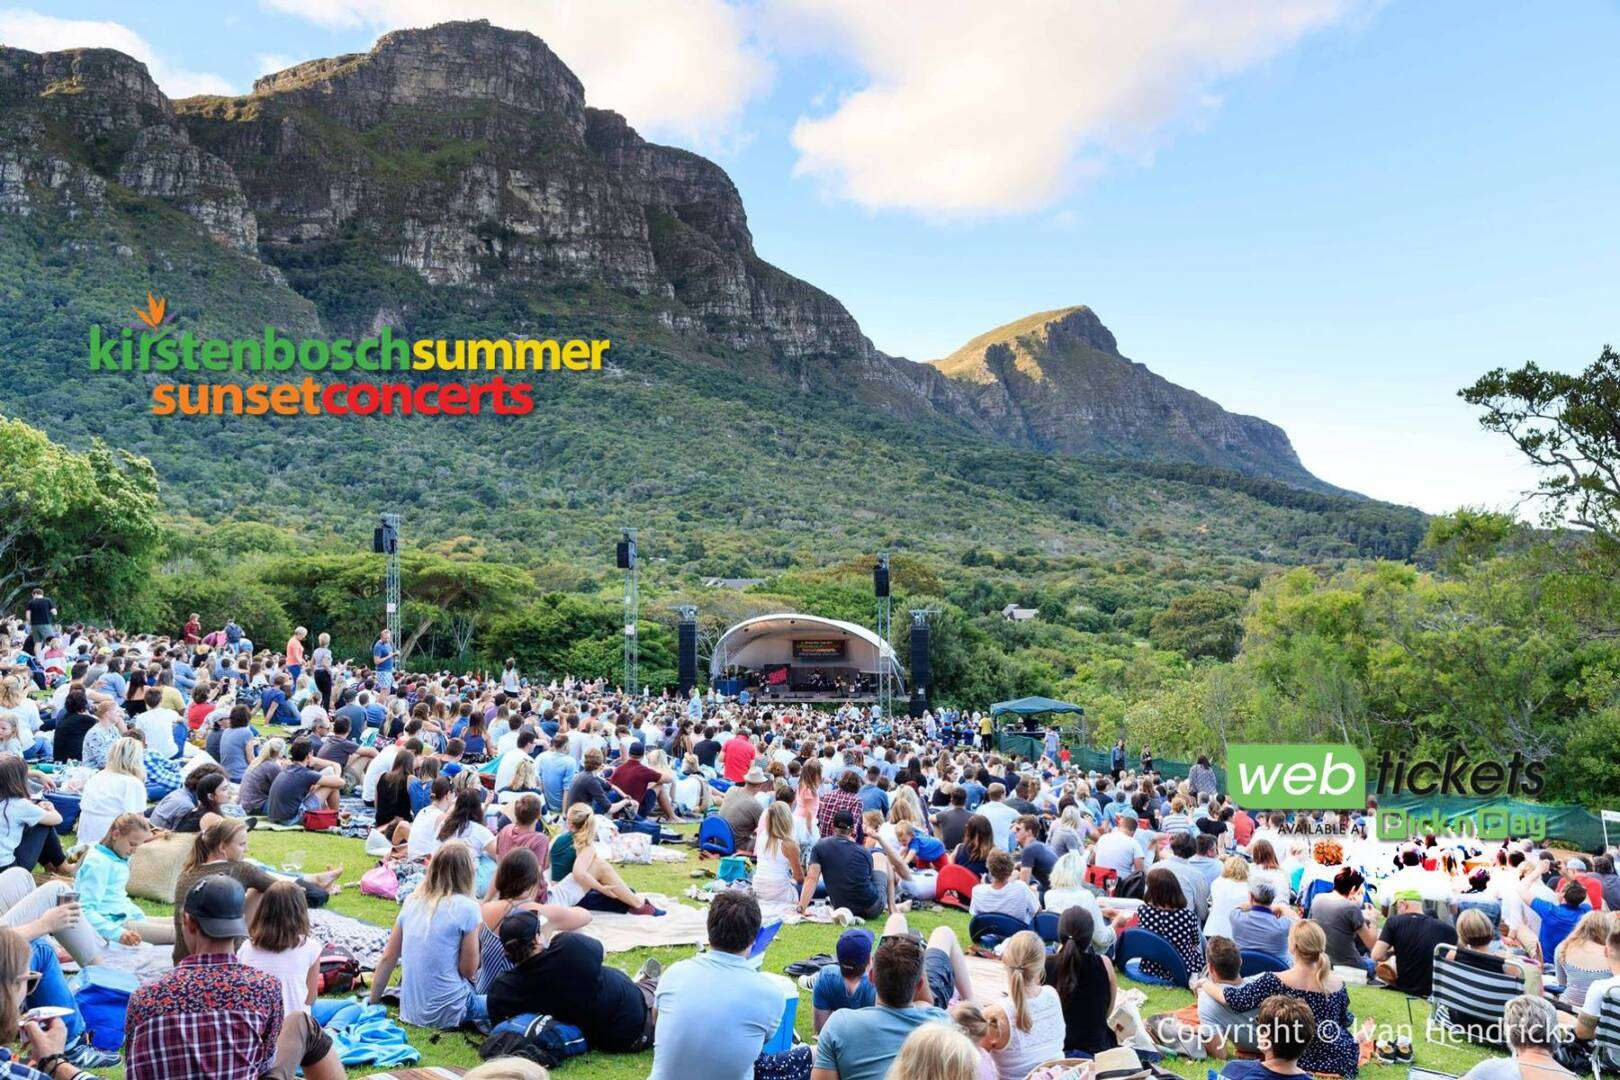 Kirstenbosch Summer Sunset Concerts suspended due to COVID-19